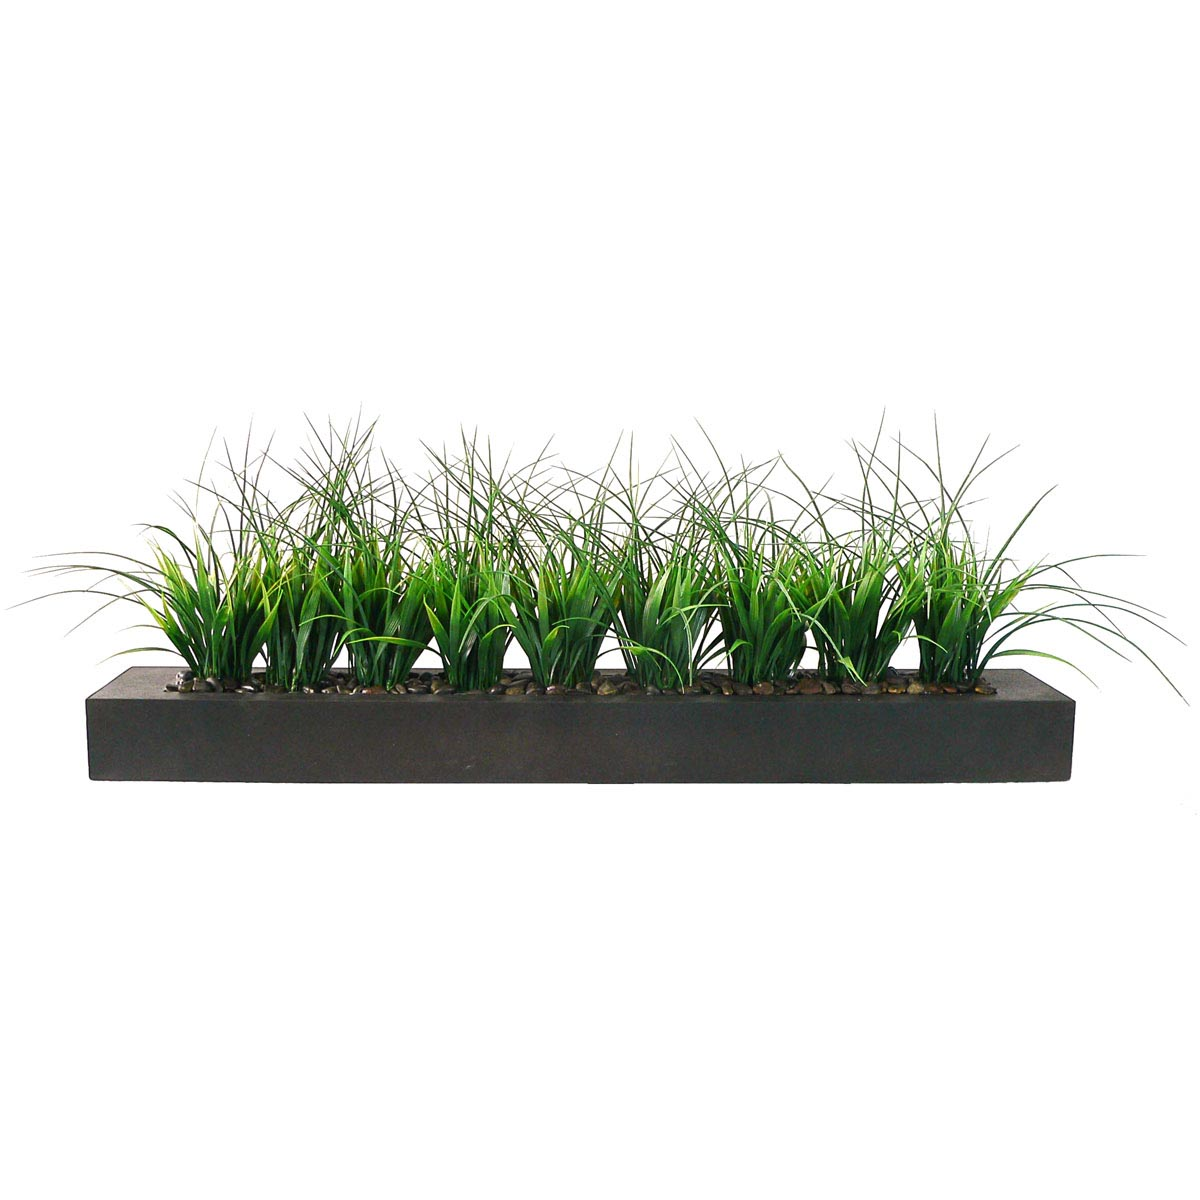 13hx9wx36l Inch Laura Ashley Artificial Grass In